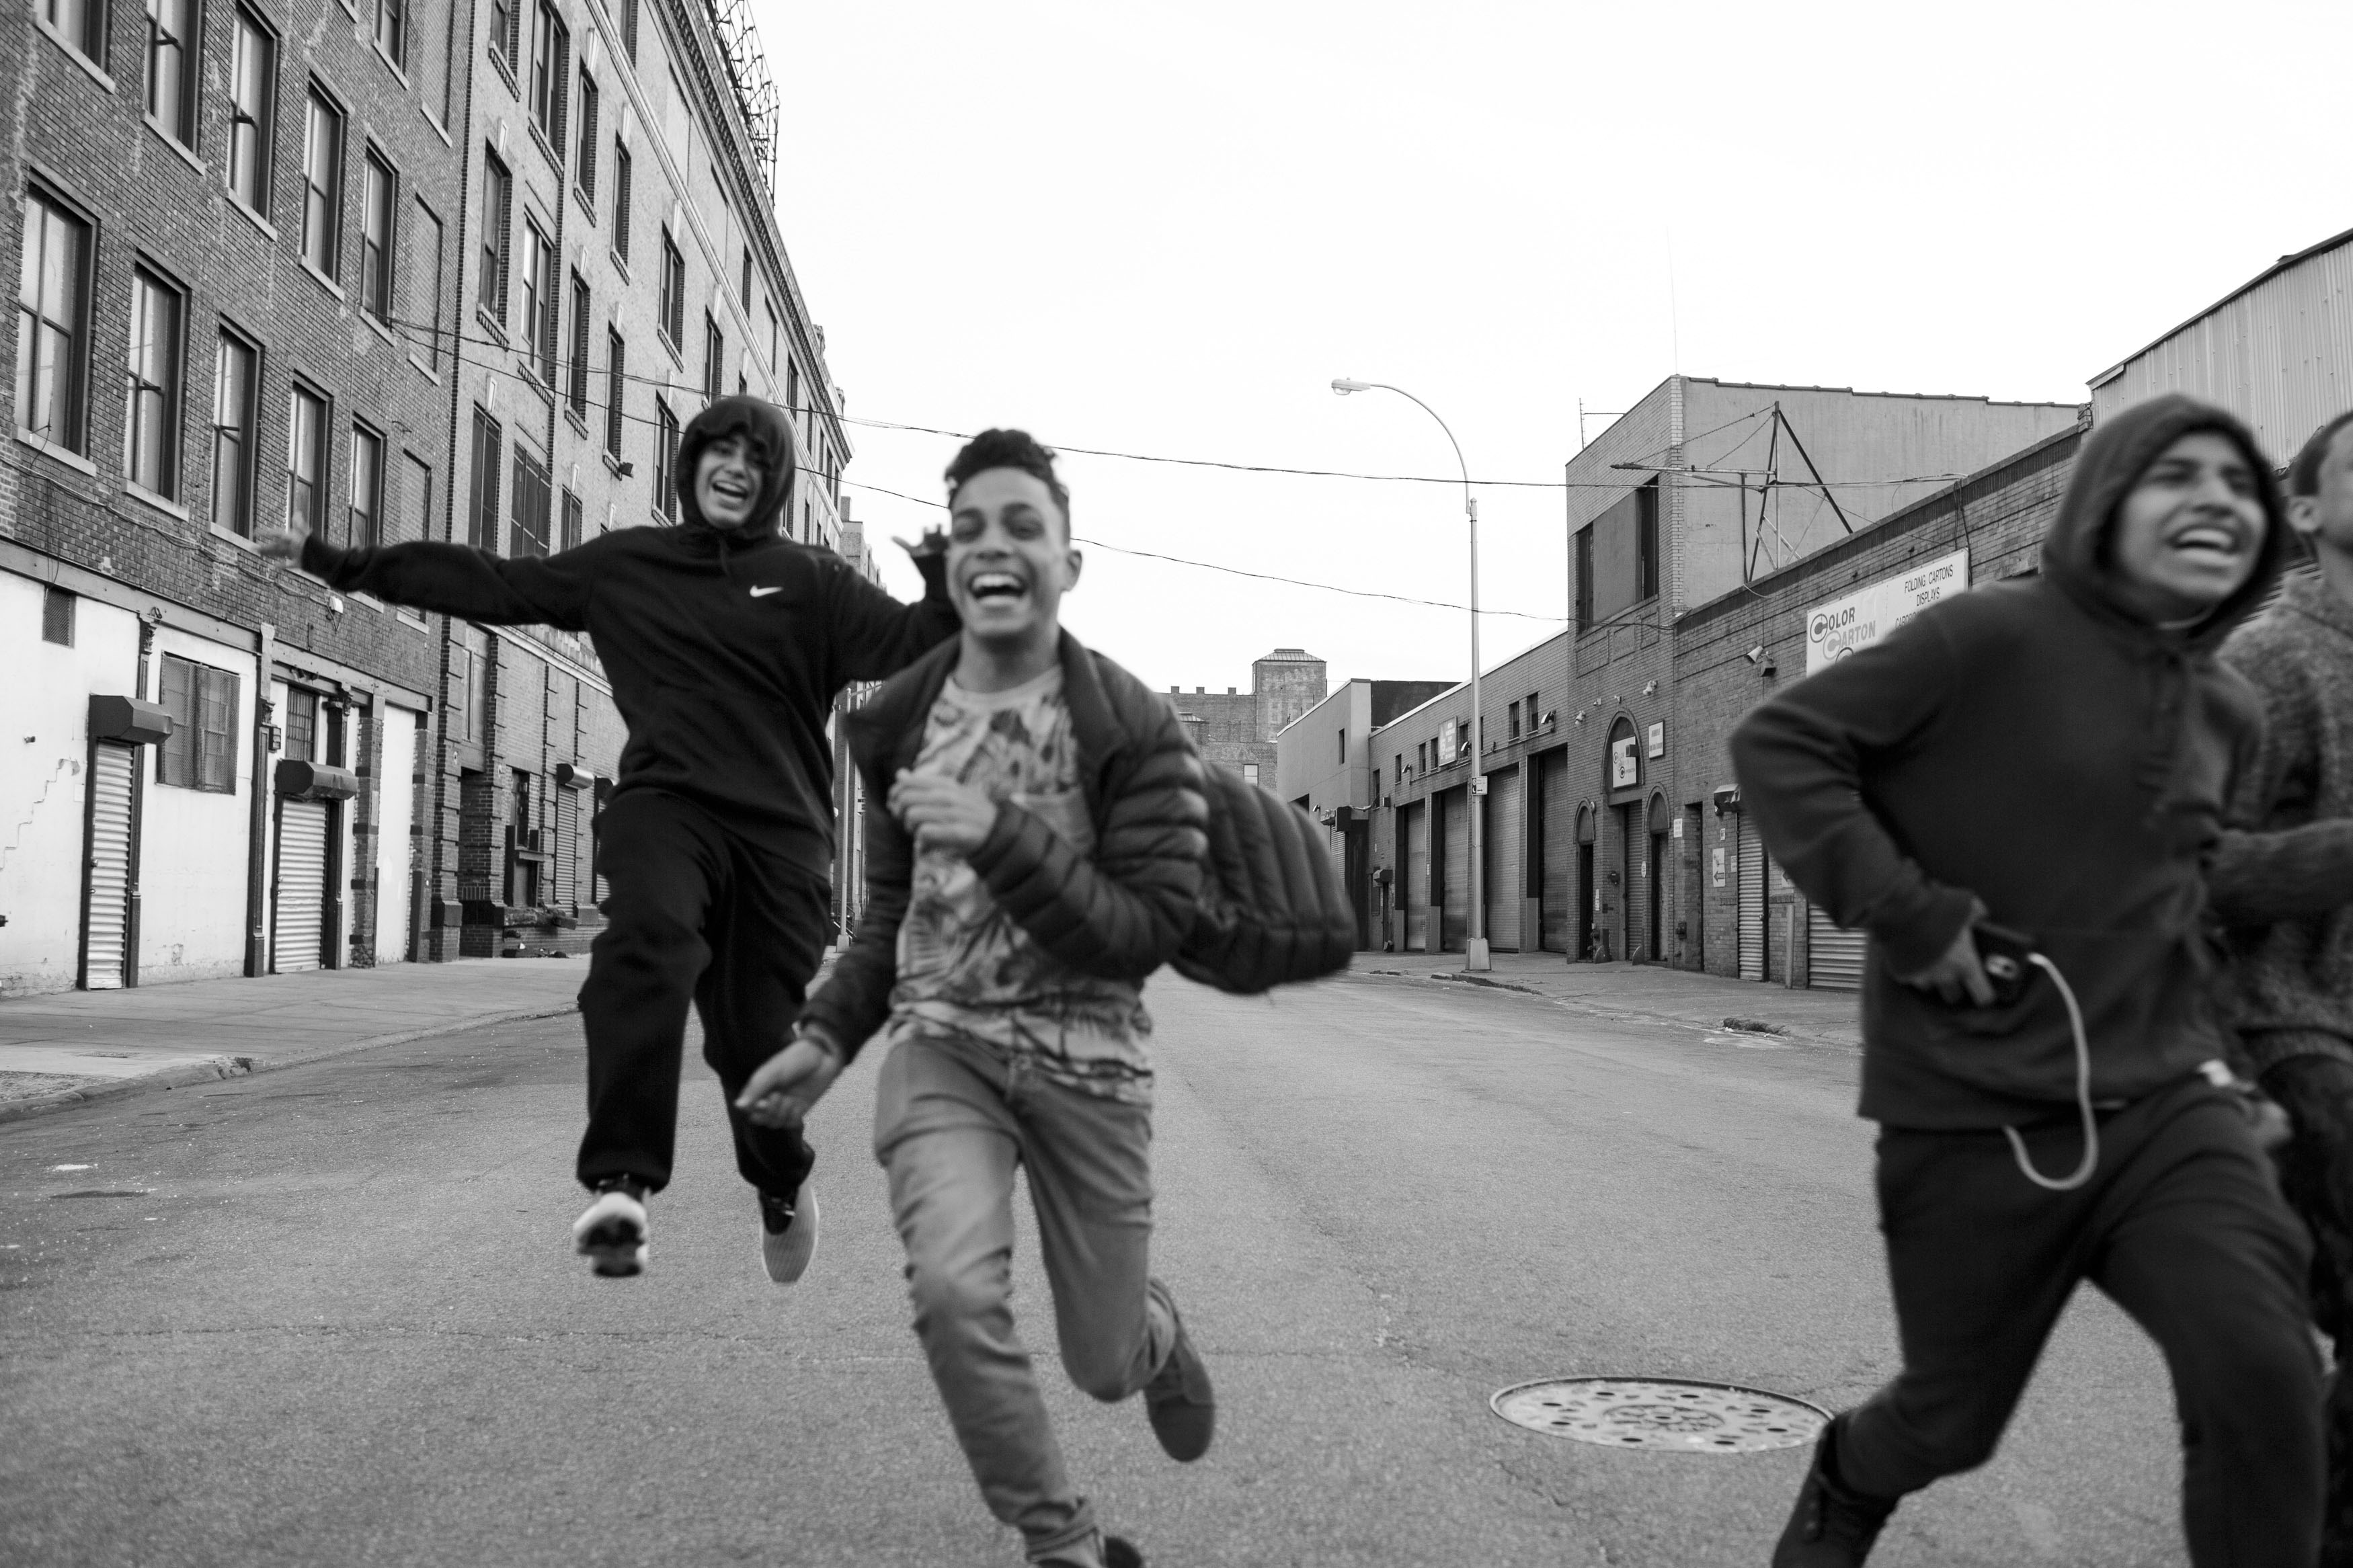 Juan Neira, Chavi Leon, Marco Vasquez and Edwin Amaro running on an afternoon free of school, 10 Apr 2016, Mott Haven, Bronx. All four boys attend different schools, but live on the same block. (Photo by Sarah Blesener/GroundTruth)